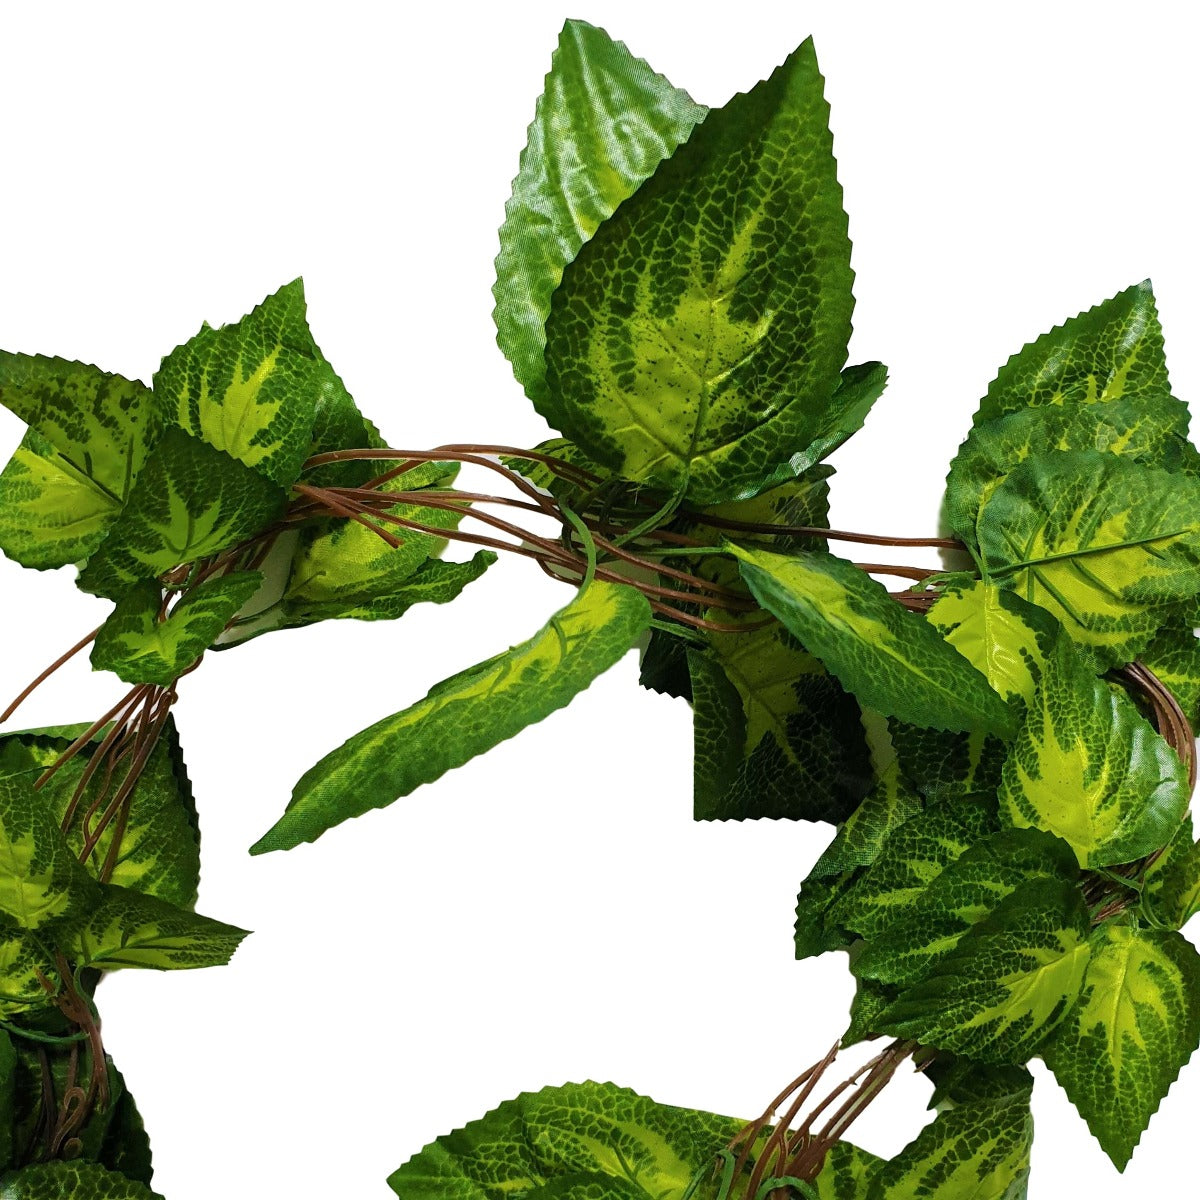 Artificial Pothos / Ivy Hanging Vines 260cm Each (5 pack)